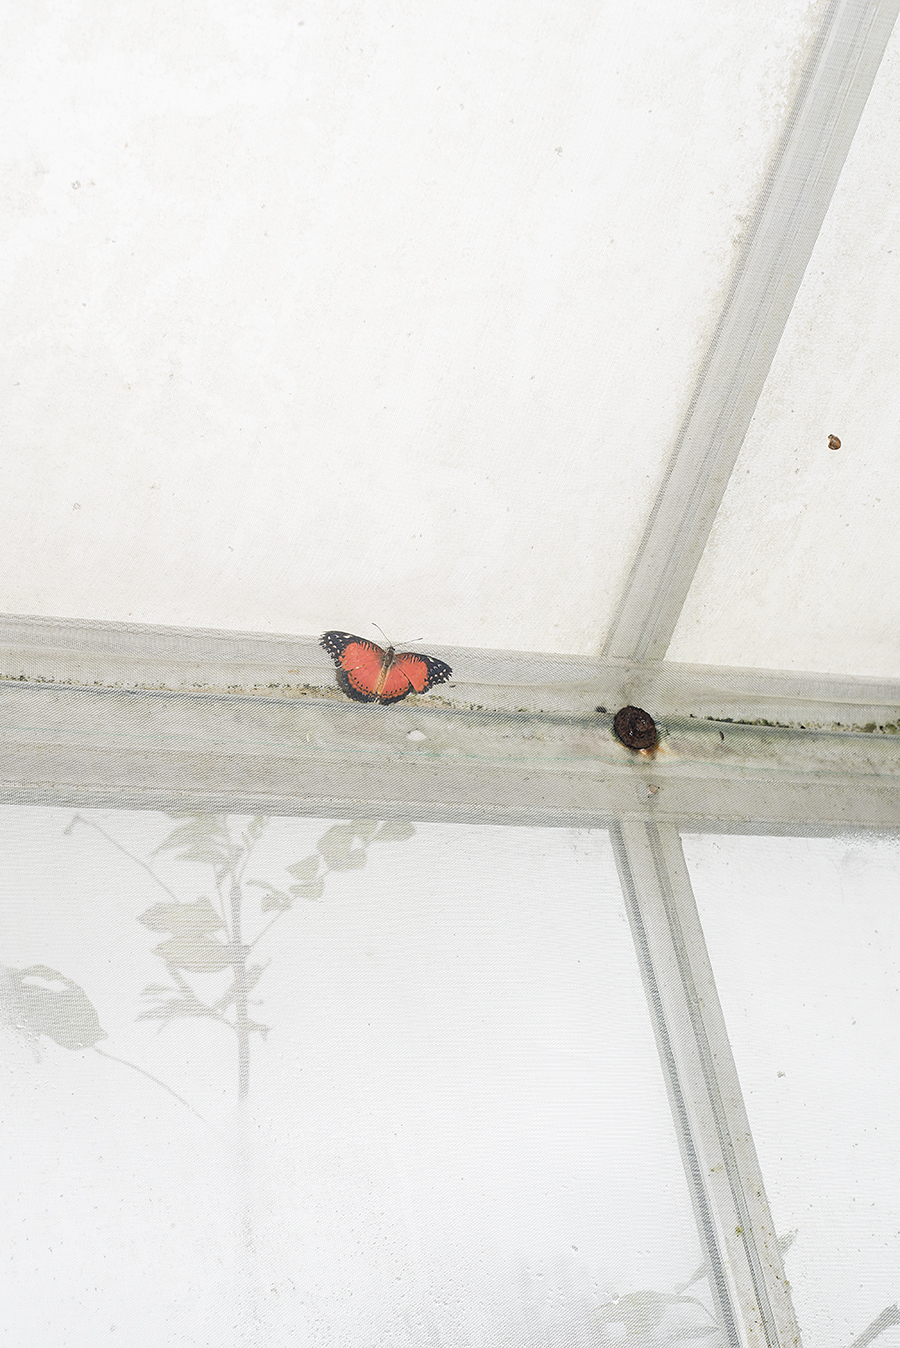 13_CHARAXES IMPERIALIS